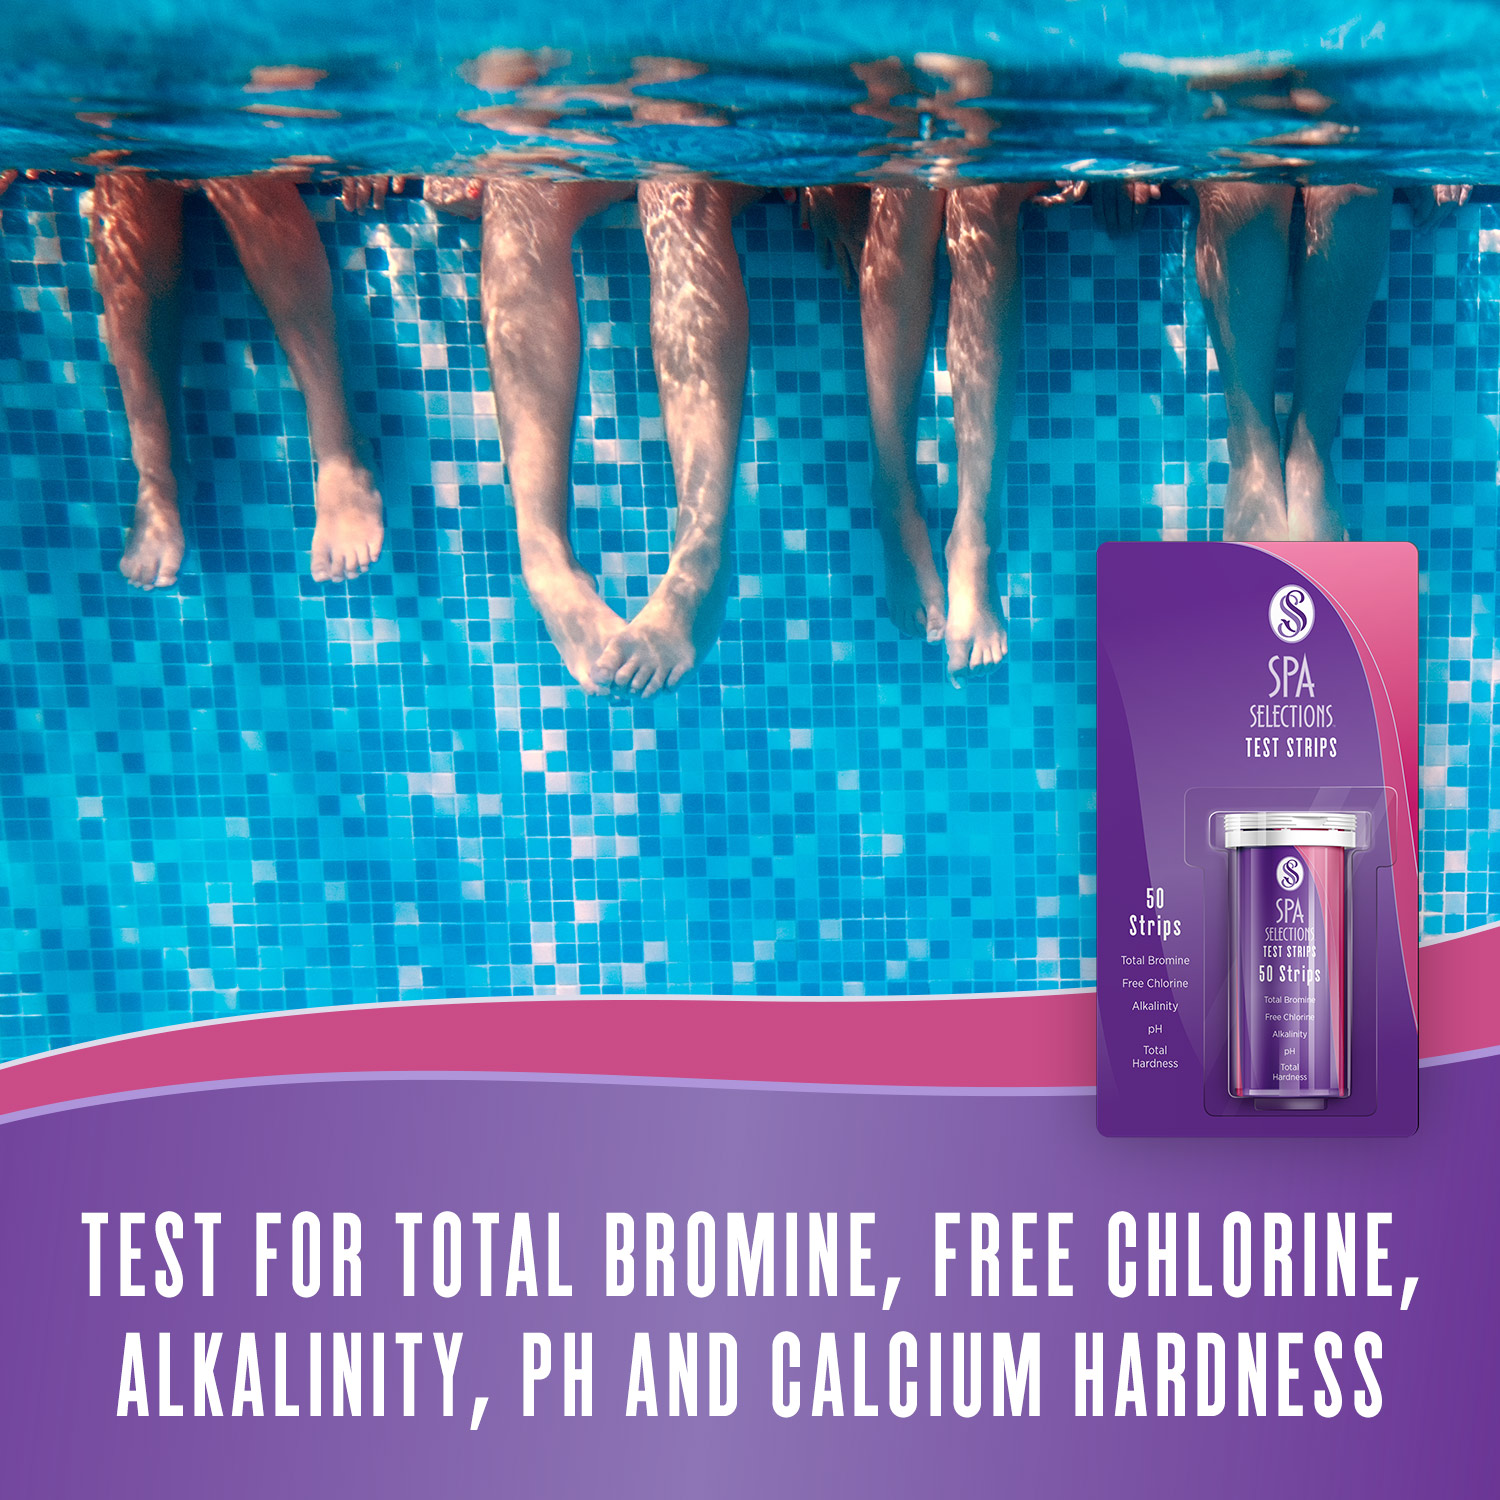 Legs in a crystal clear pool. Test for total bromine, free chlorine, alkalinity, pH and calcium hardness with Spa Selections test strips.